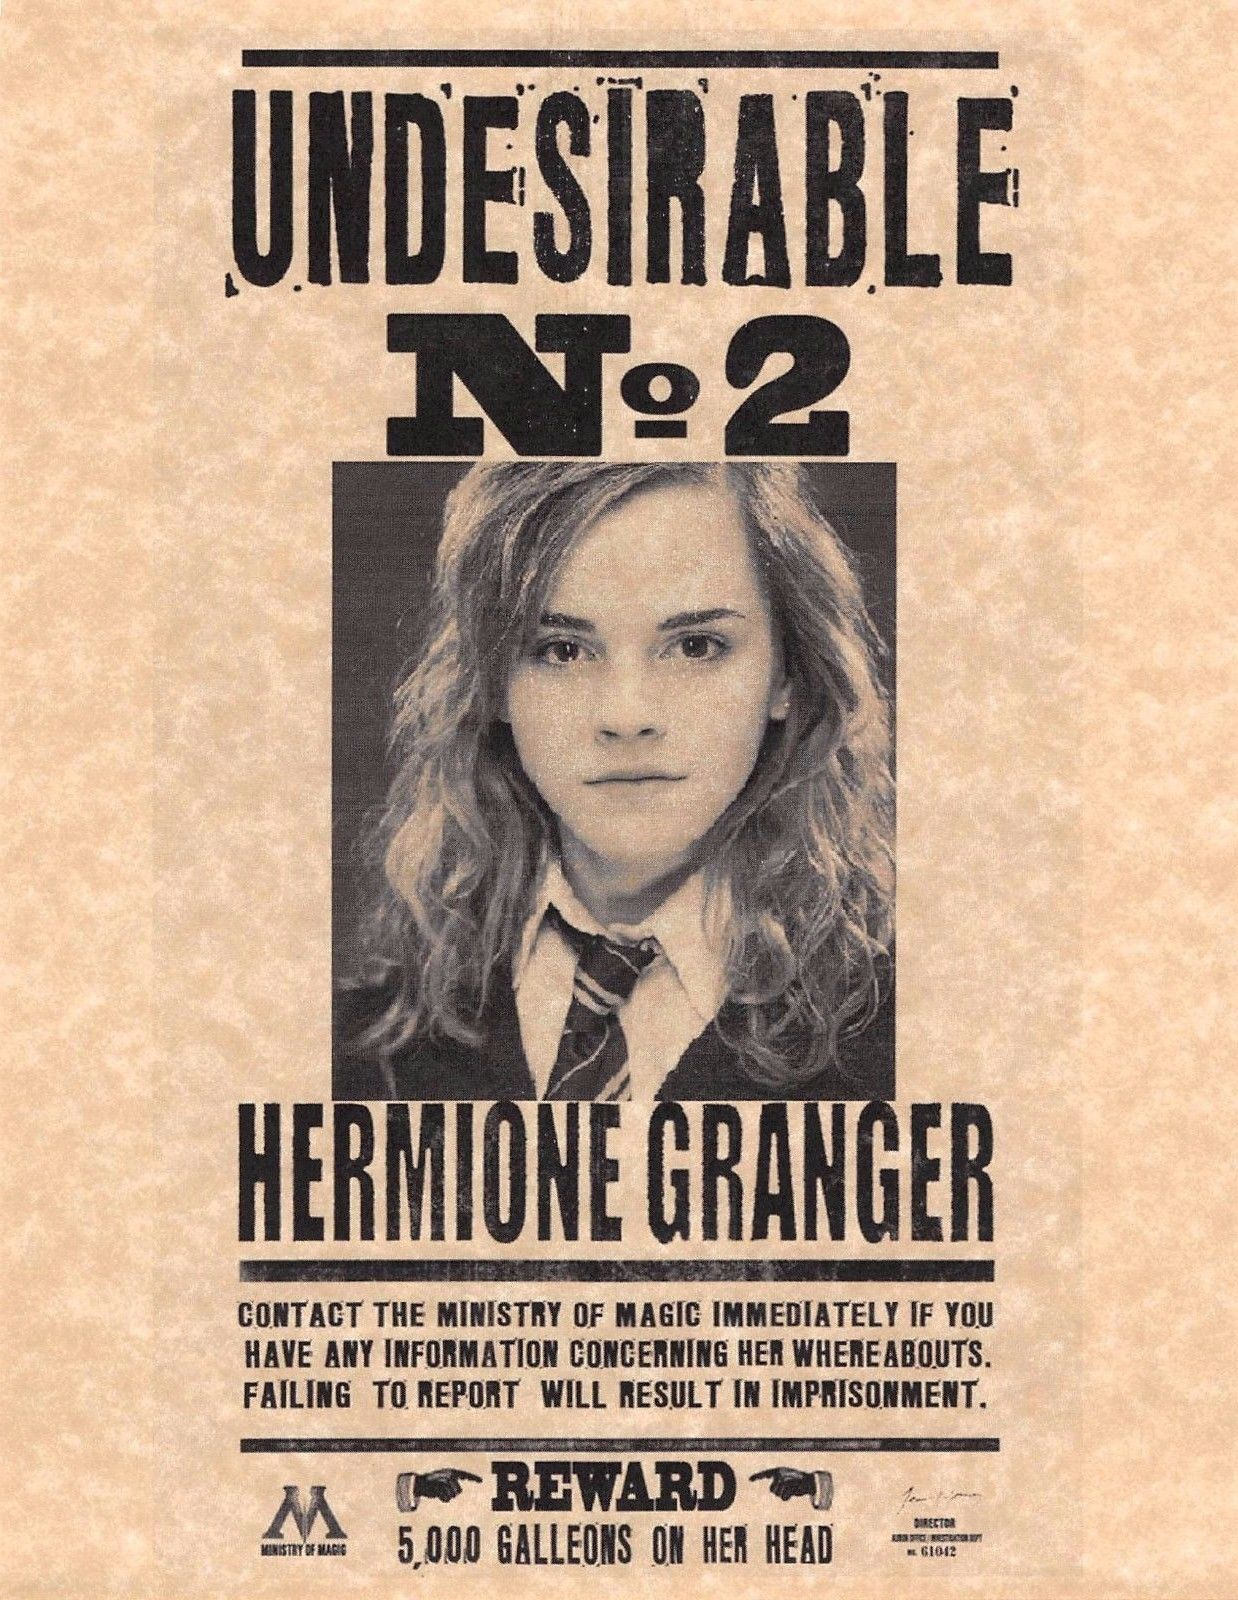 Harry potter undesirable number 2 hermione granger flyer zoom 1betcityfo Images